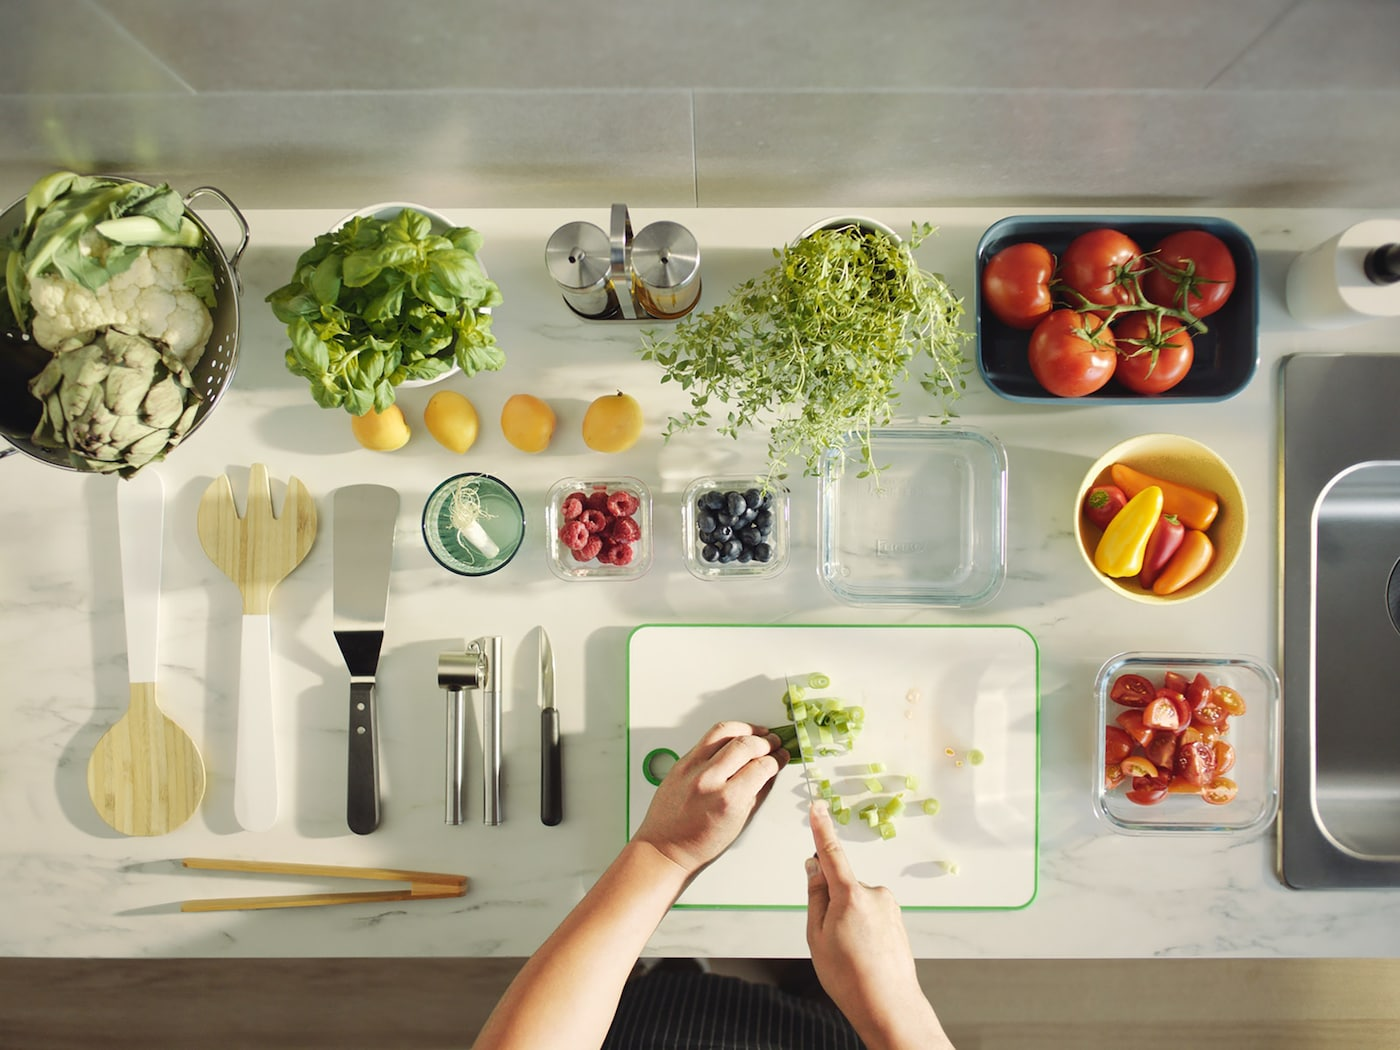 Two hands slice spring onion on a green/white MATLUST chopping board, next to kitchenware and various fruits and herbs